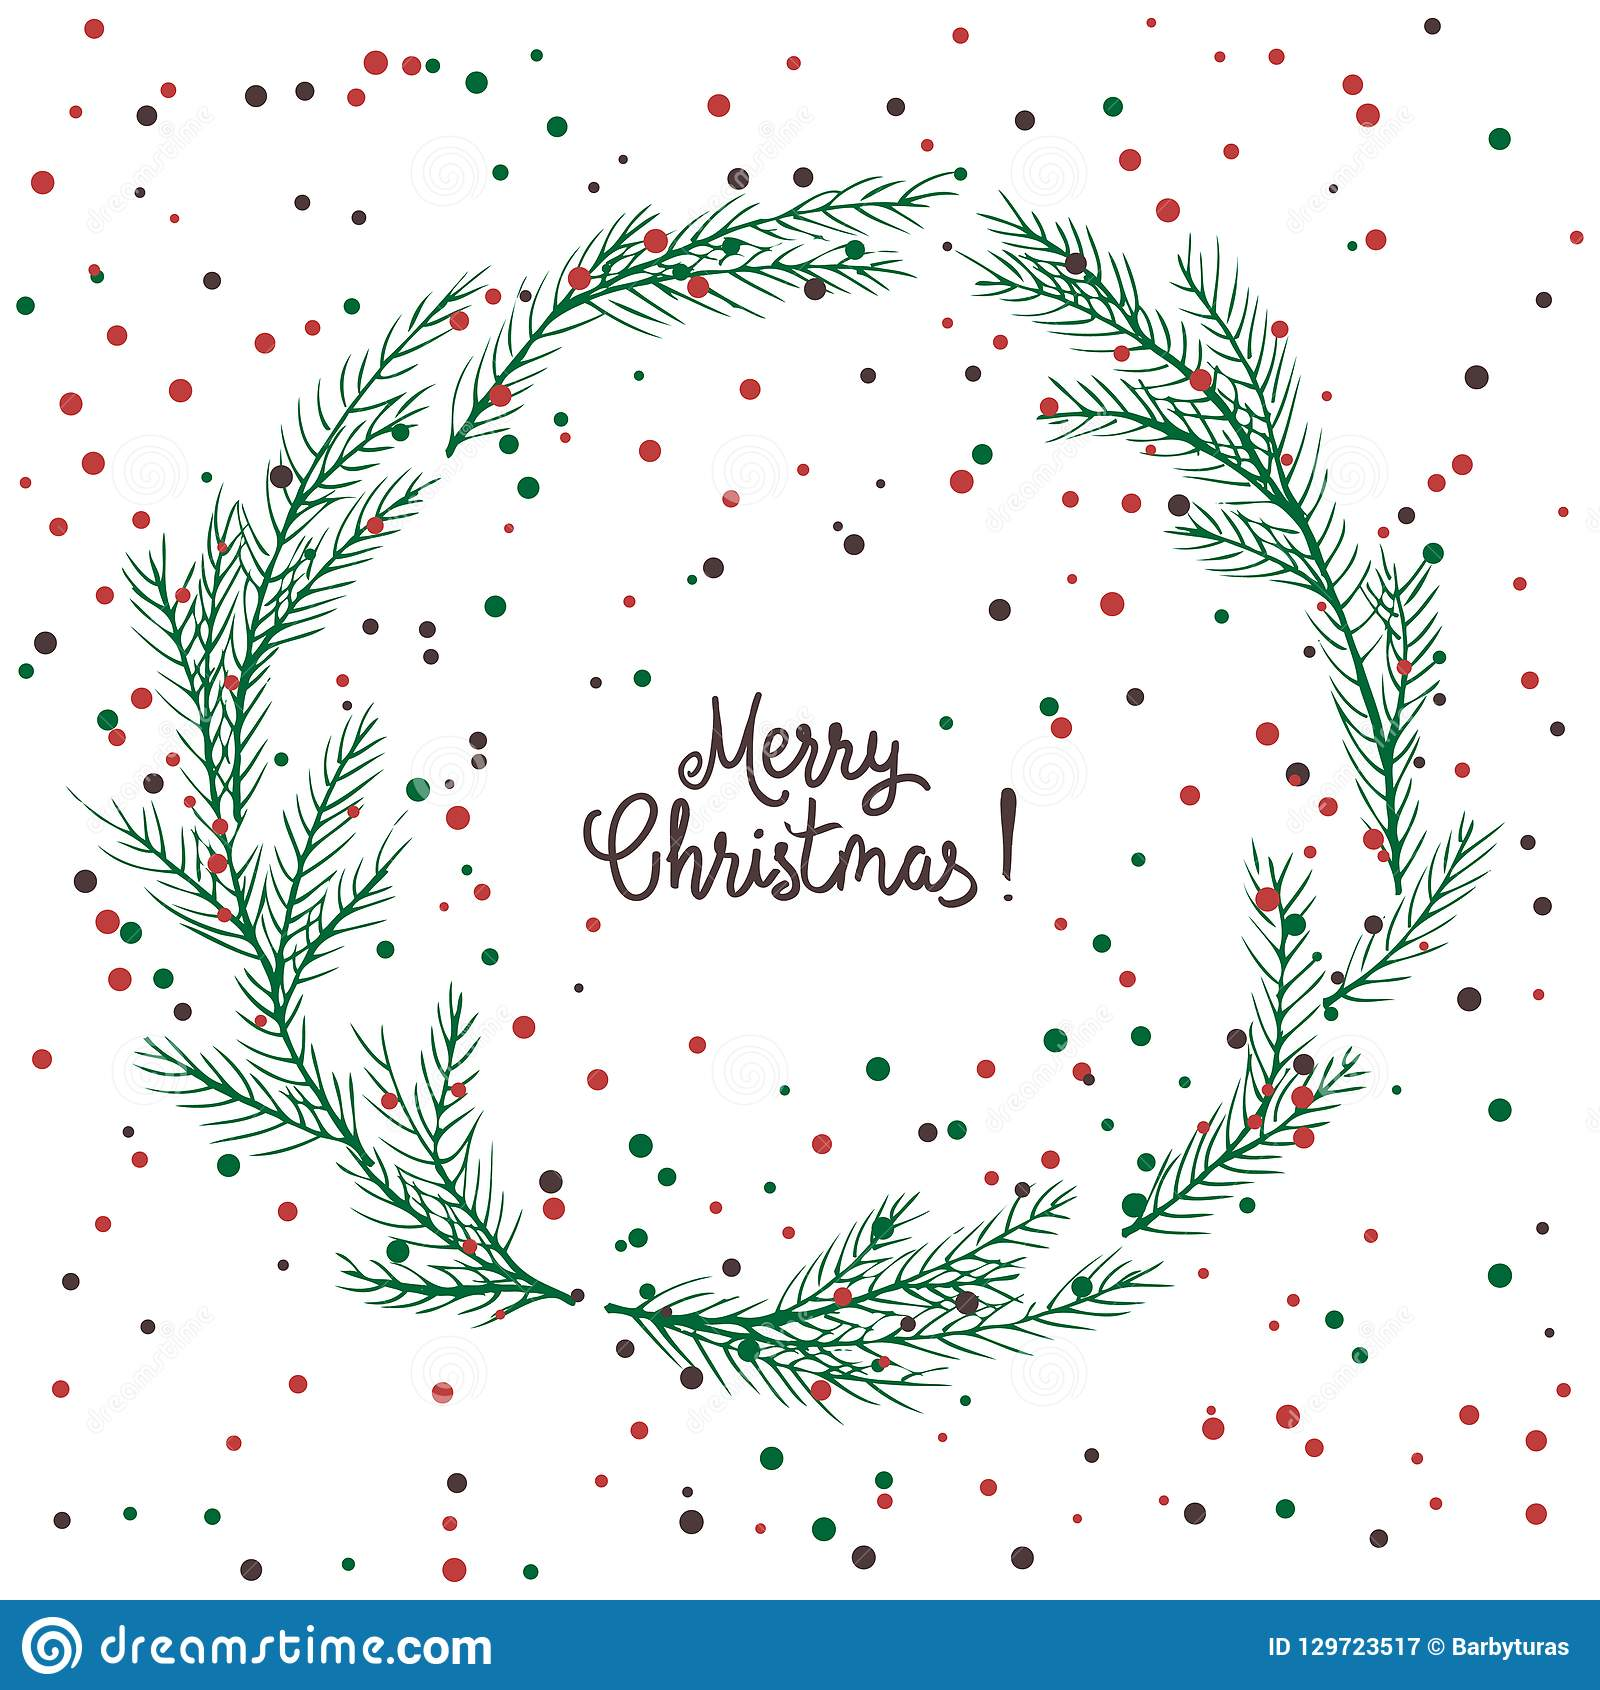 Vector image of a Christmas wreath, a wreath of green fir. Merry Christmas inscription in the center. Christmas mood. Universal us